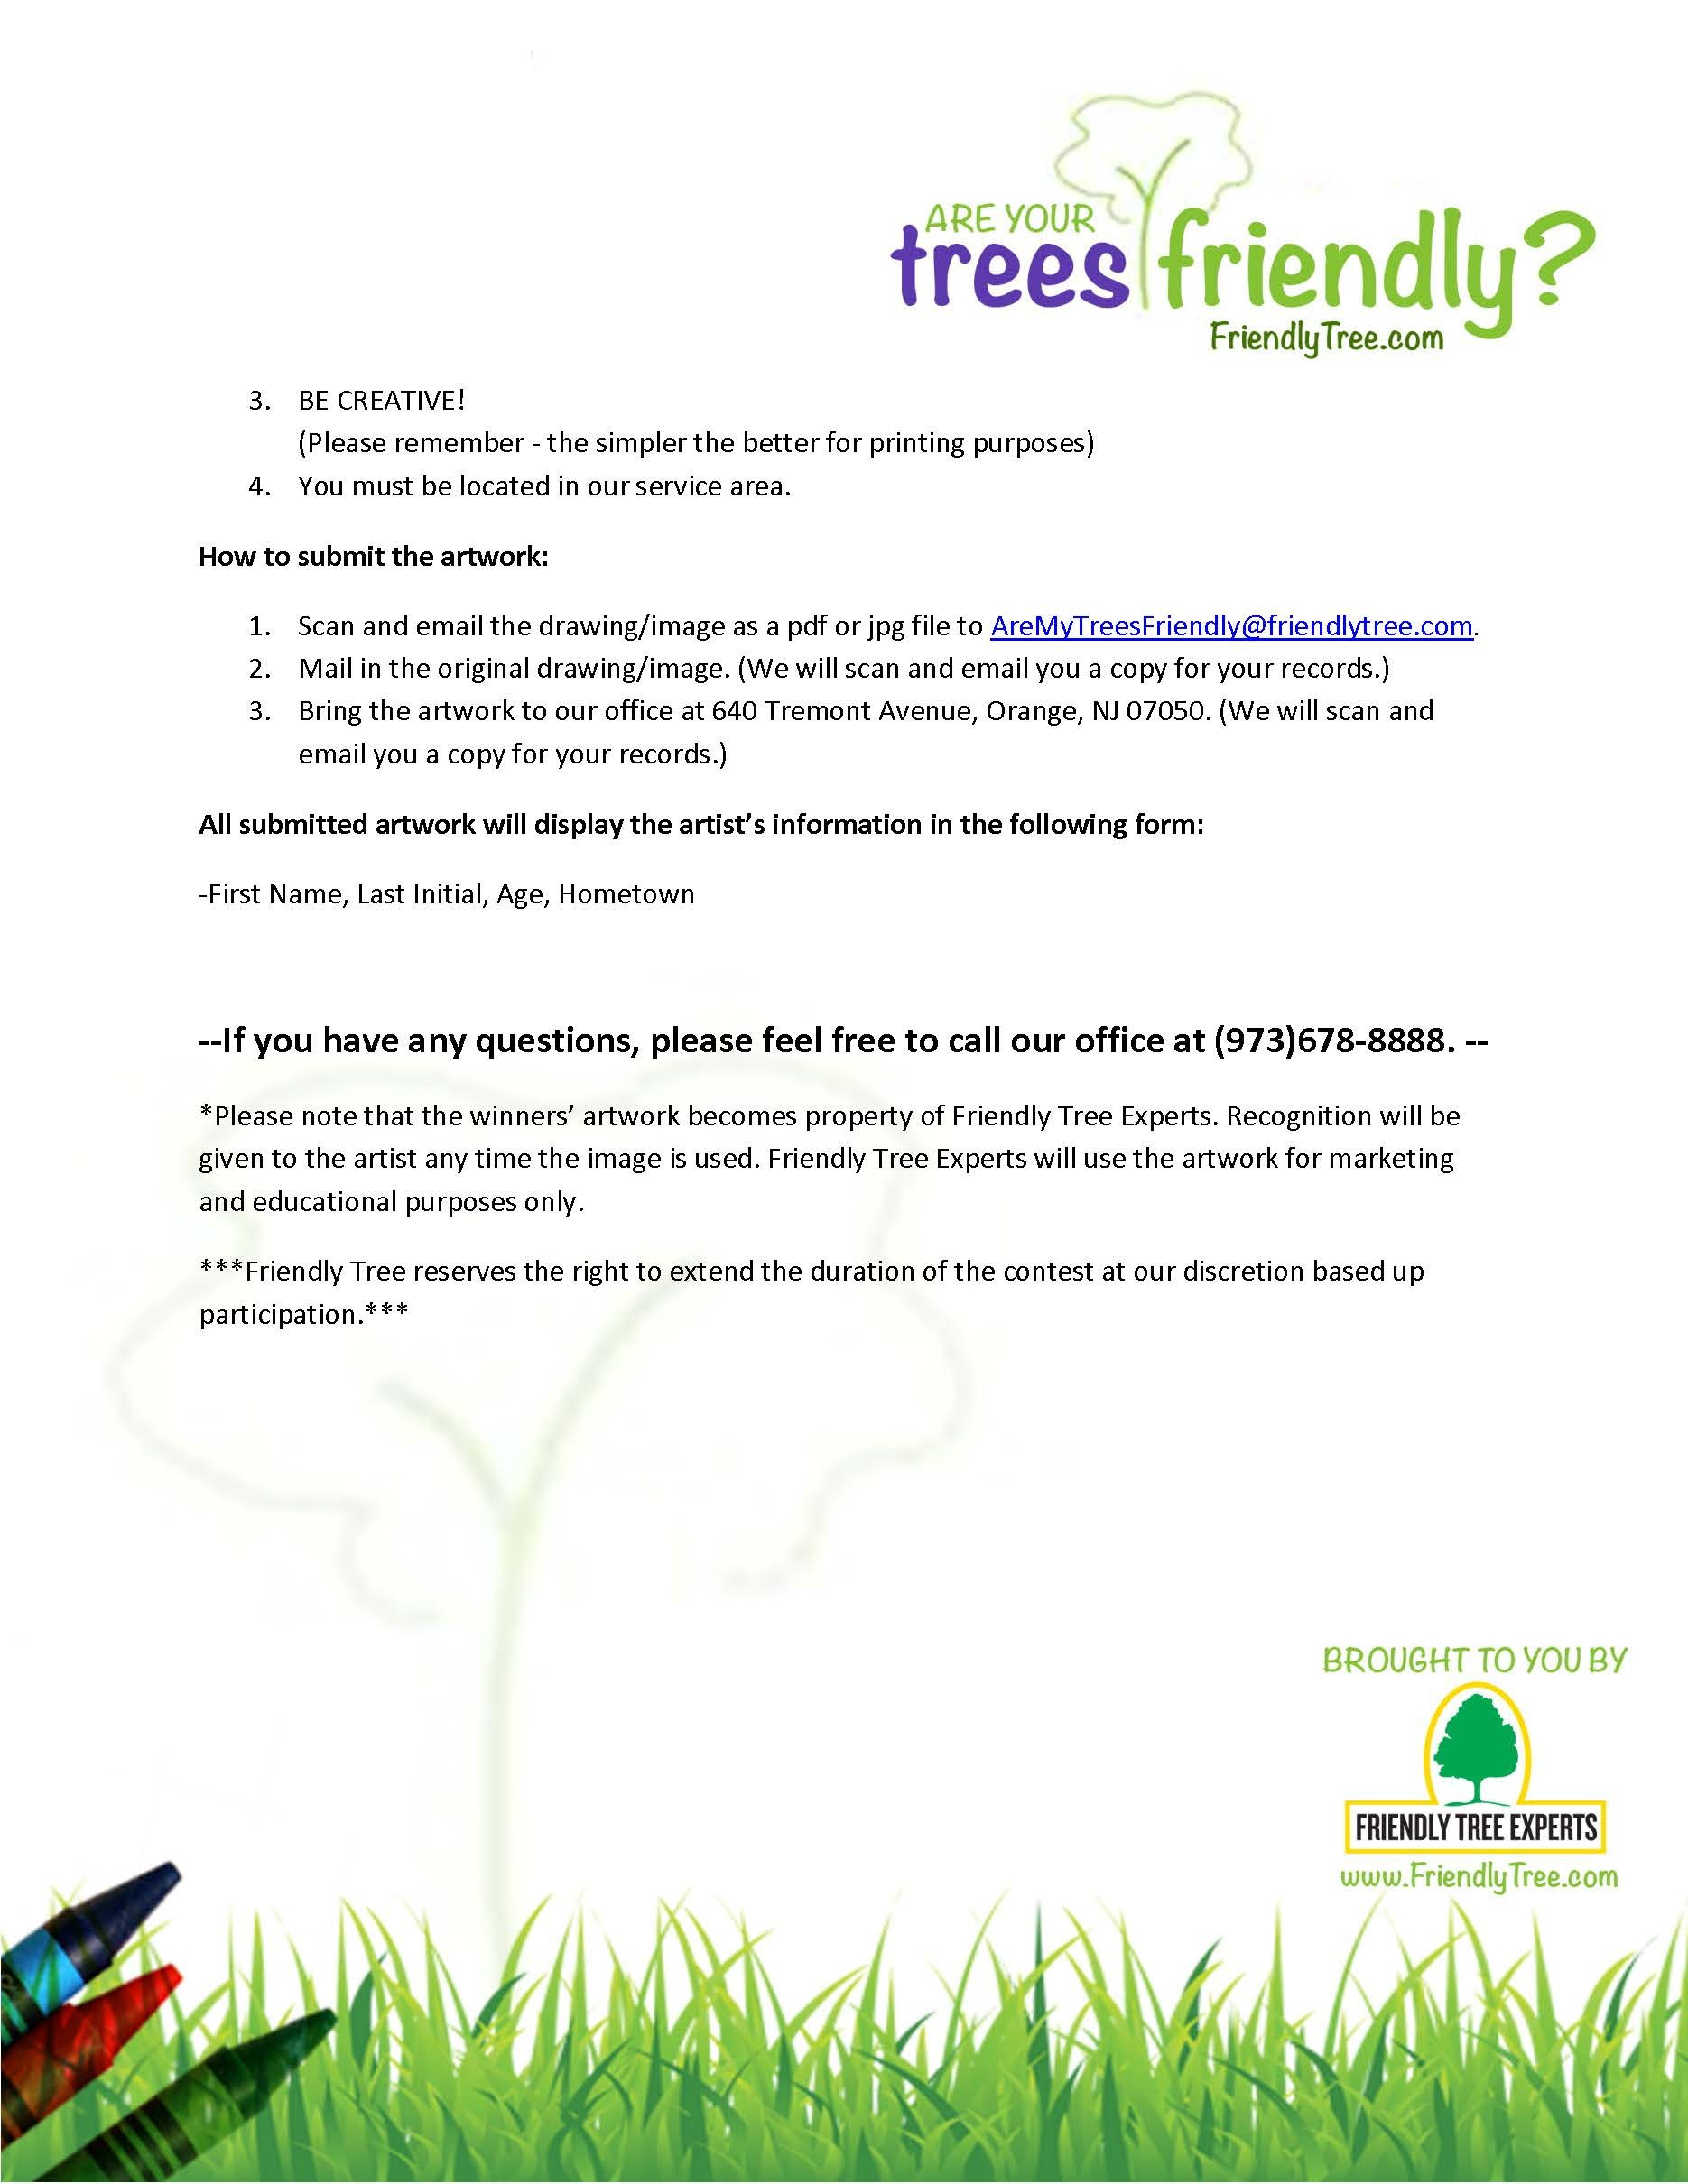 402ca7ae6ad079587691_Are_Your_Trees_Friendly_Rules_with_border___watermark_PICTURE_Page_2.jpg